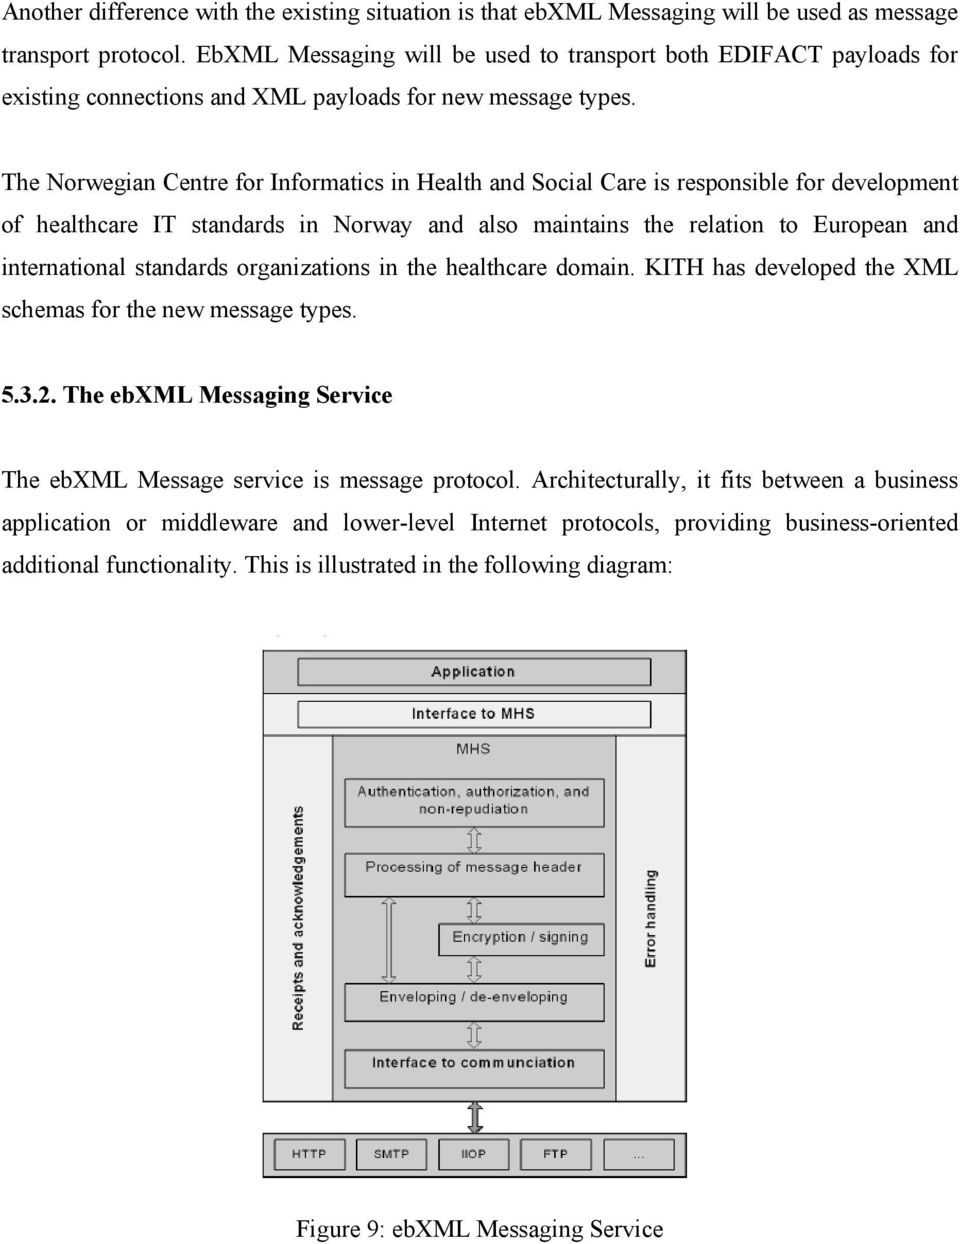 The Norwegian Centre for Informatics in Health and Social Care is responsible for development of healthcare IT standards in Norway and also maintains the relation to European and international